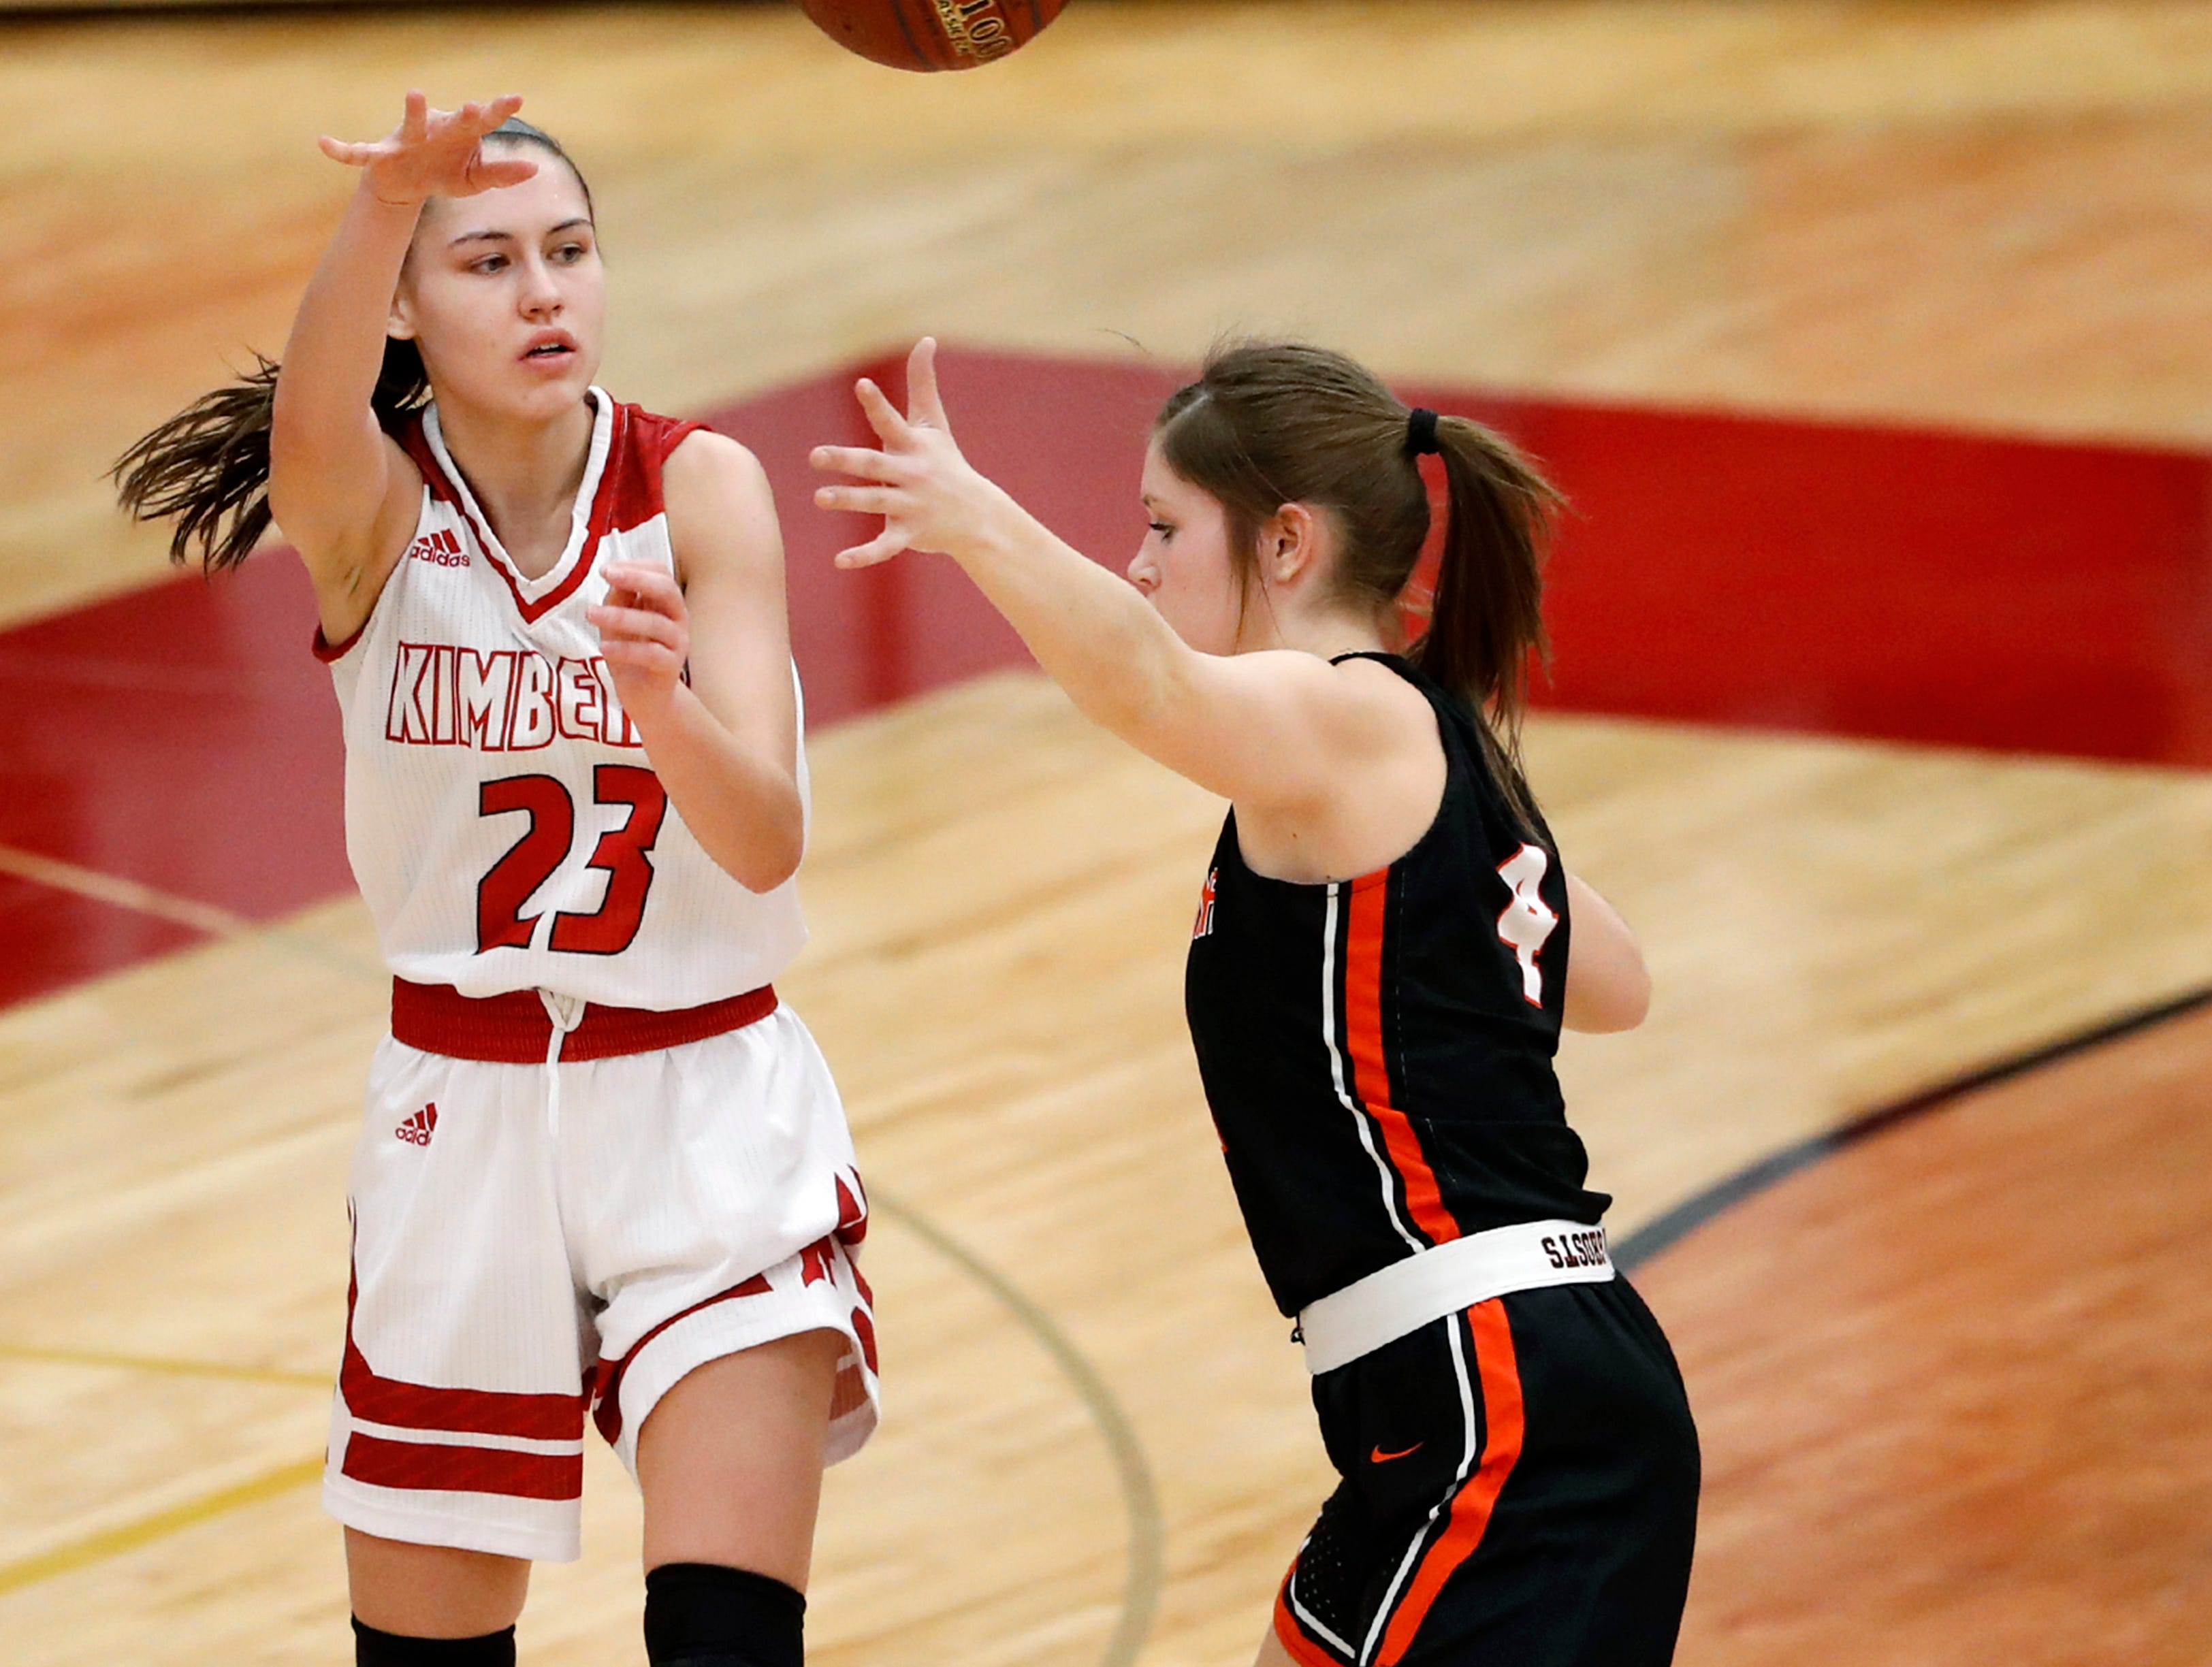 Kimberly High School's Bryn Sikora looks for a pass during their game against Kaukauna High School Friday, Dec. 7, 2018, in Kimberly, Wis.